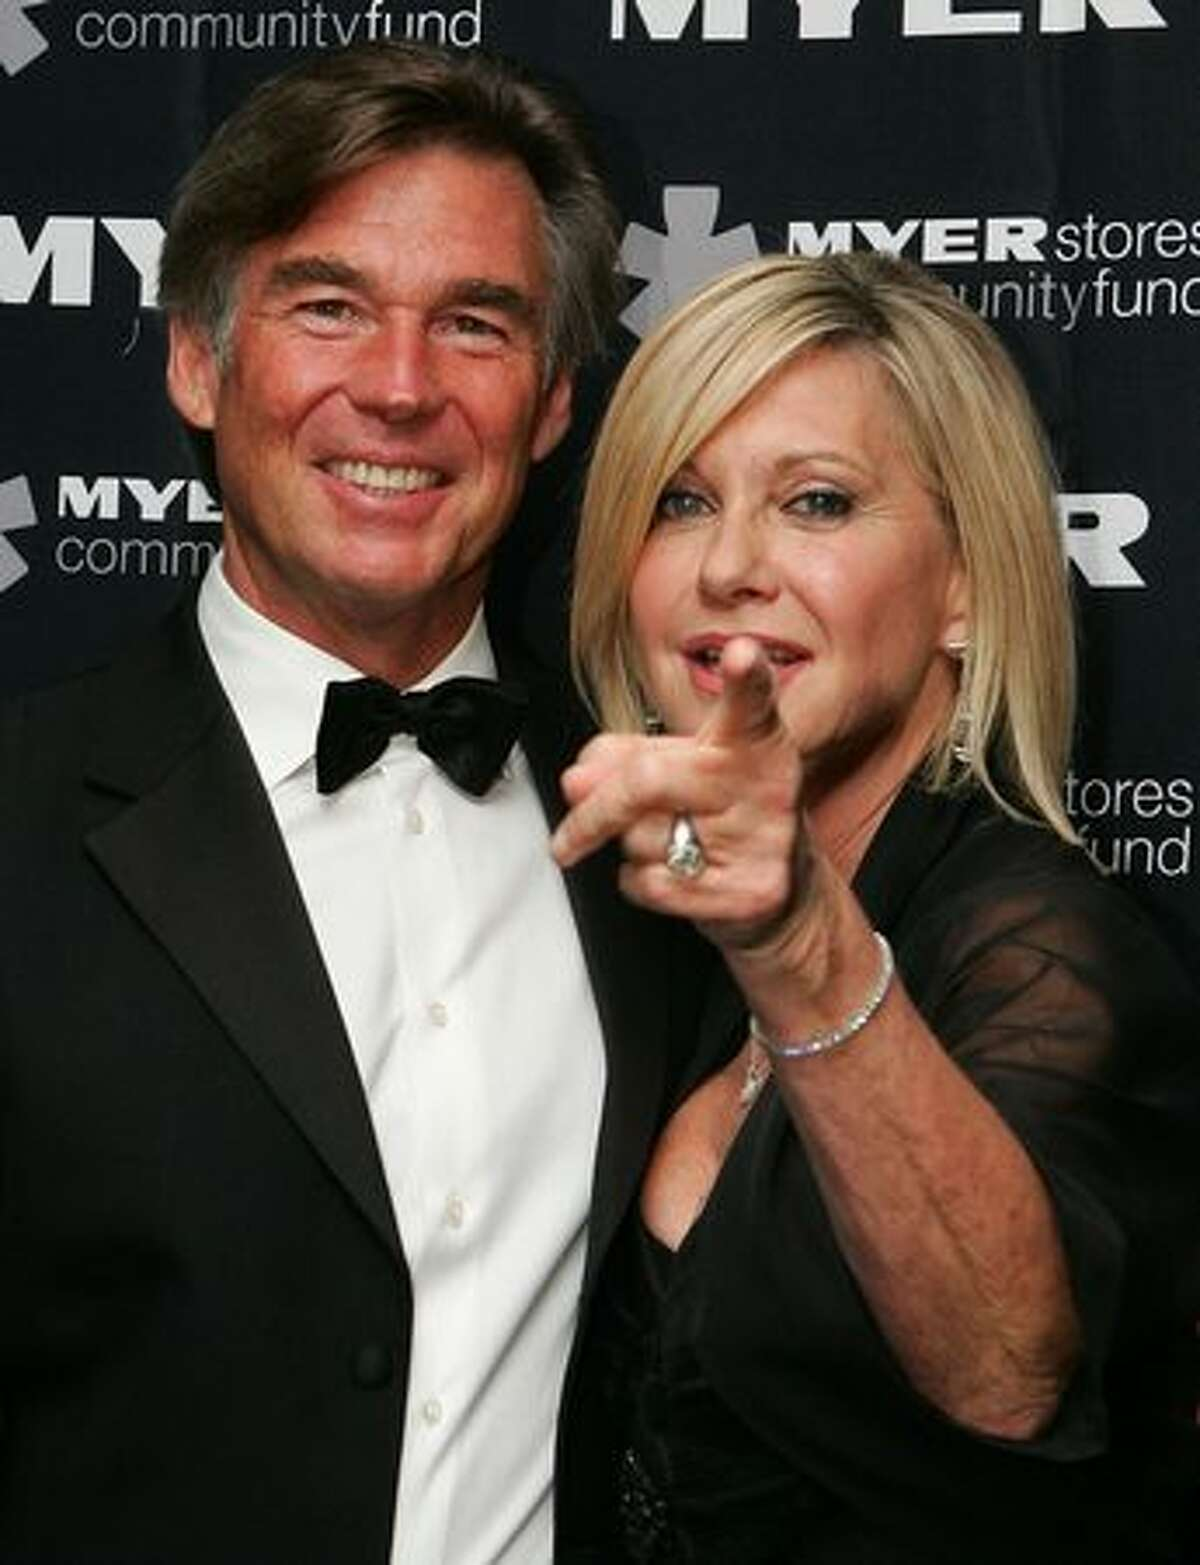 Olivia Newton-John and husband John Easterling arrive at the 2010 Precious Metal Ball in support of the Olivia Newton-John Cancer and Wellness Centre at Peninsula, the Docklands on May 21, 2010 in Melbourne, Australia.